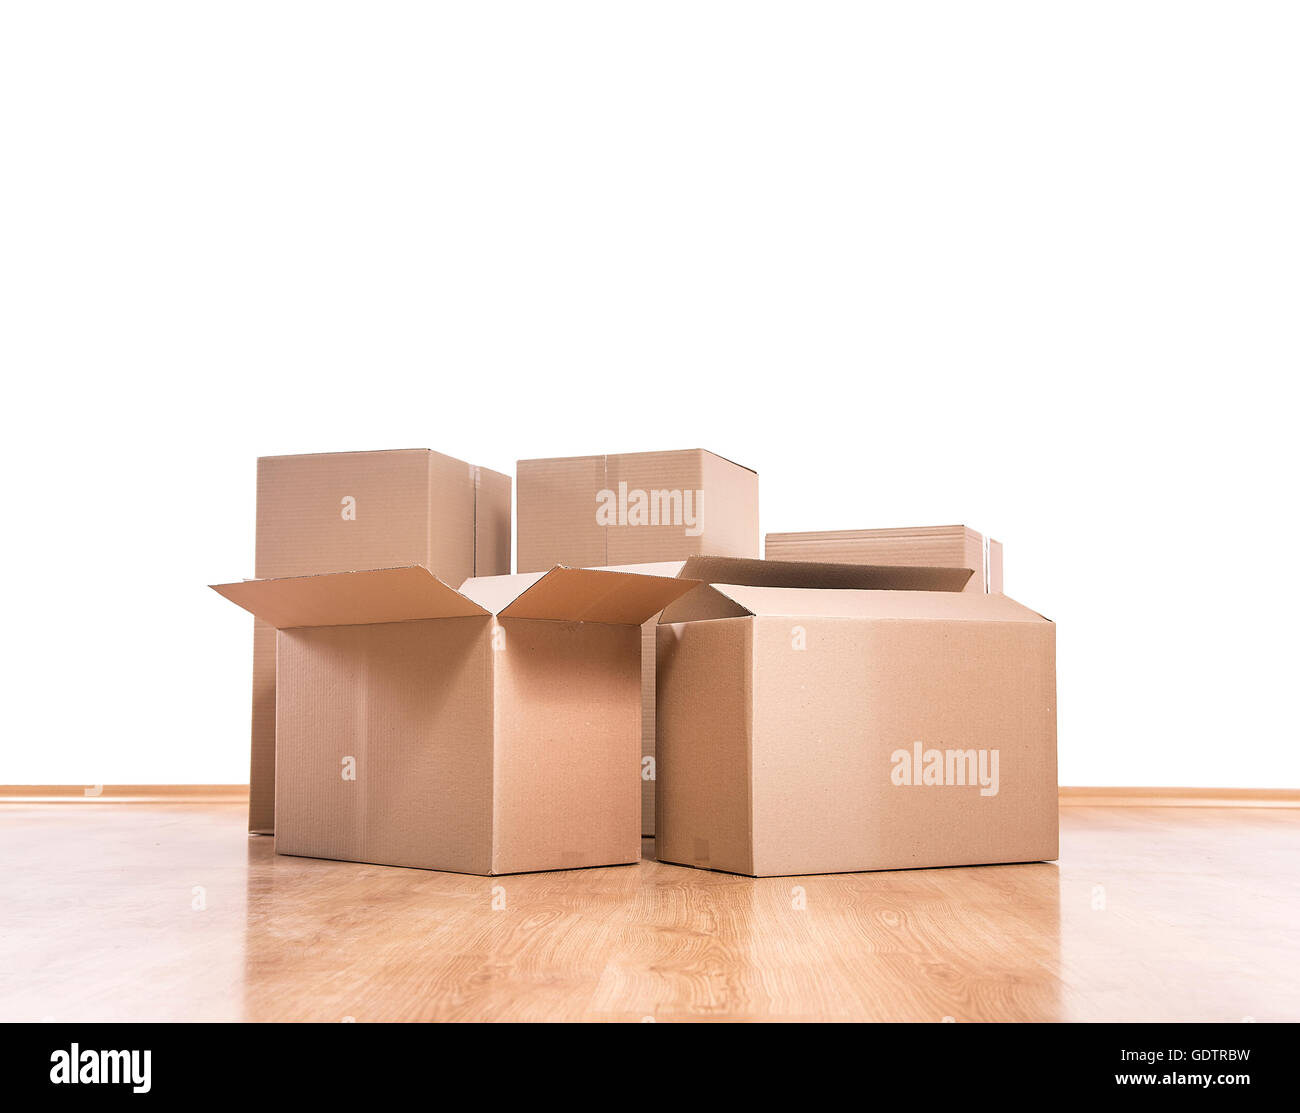 Empty room with a white wall and moving boxes on the floor. Stock Photo